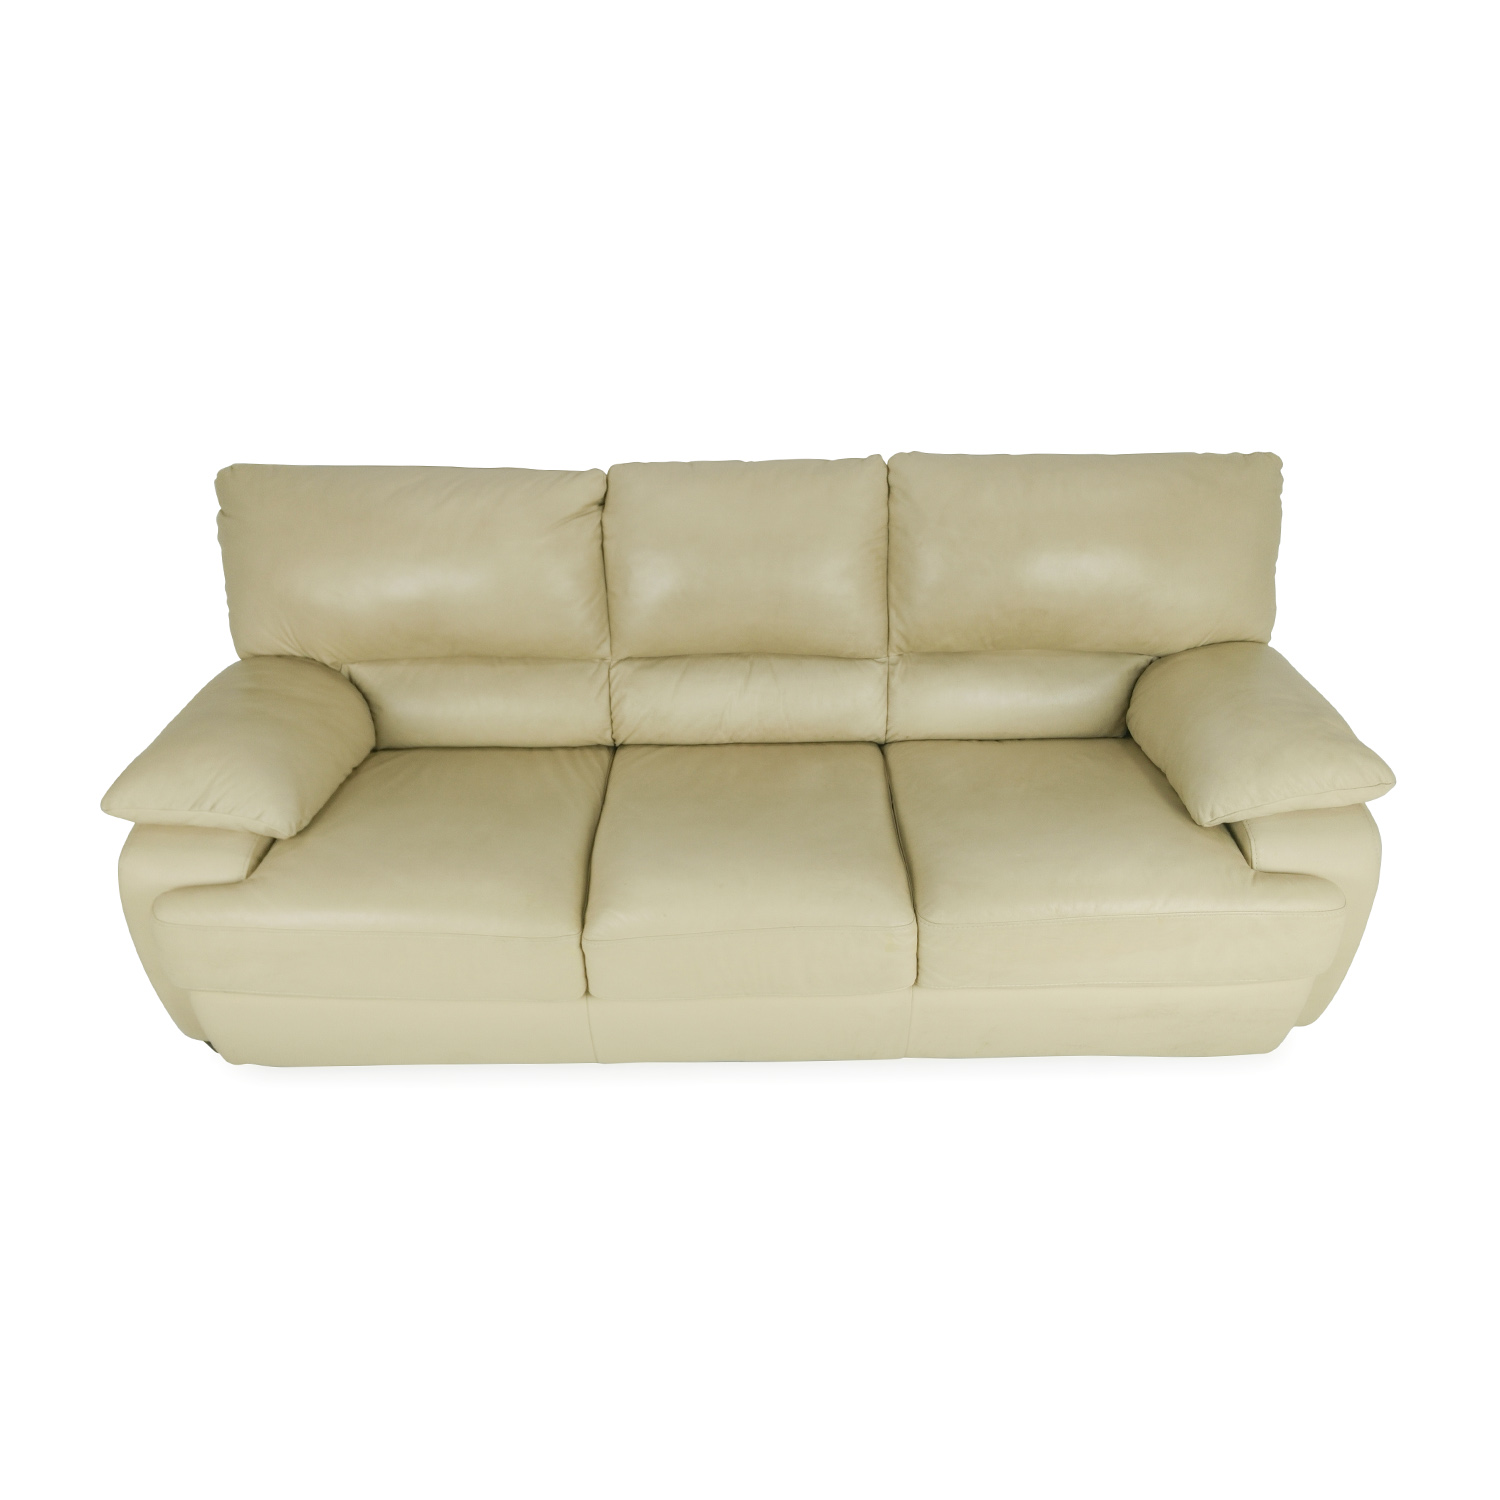 Tan Leather Sofa Bed Leather Sofa Corner Sectional Thesofa